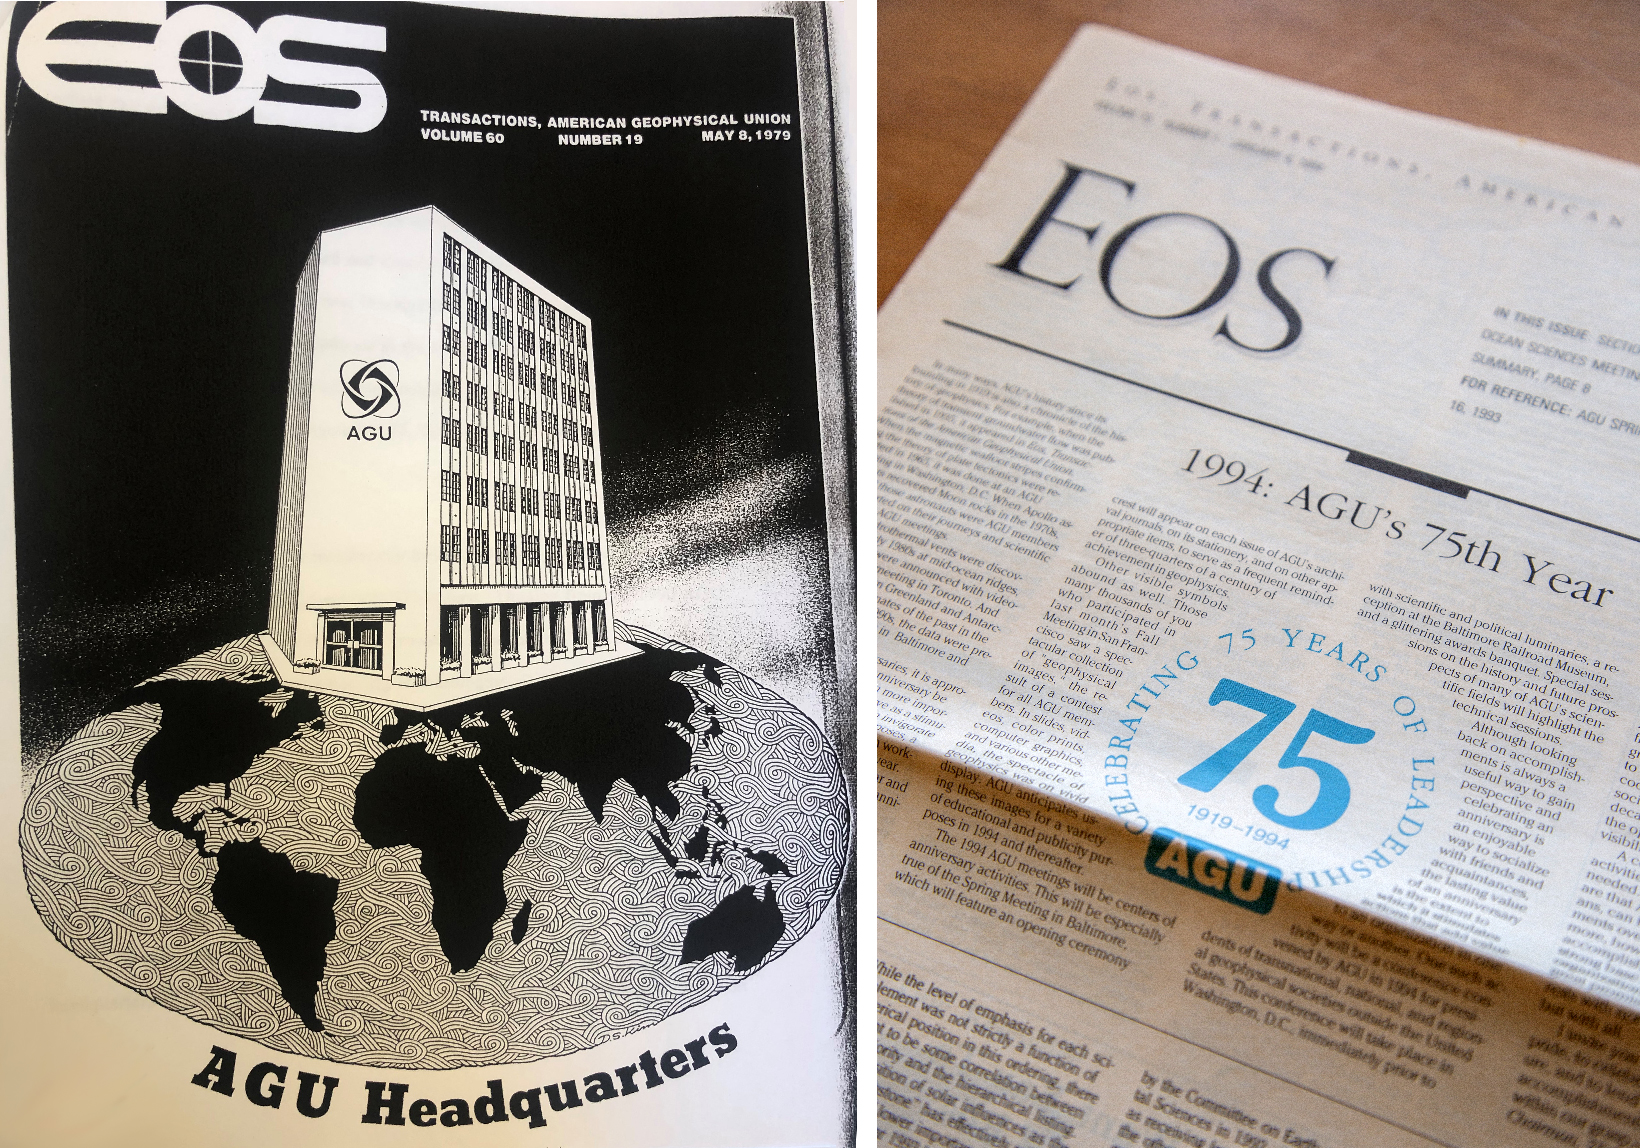 The cover of the 8 May 1979 issue of Eos, featuring an illustration of AGU's new headquarters (left). The front page of a 1994 issue of Eos, celebrating AGU's 75th anniversary (right).